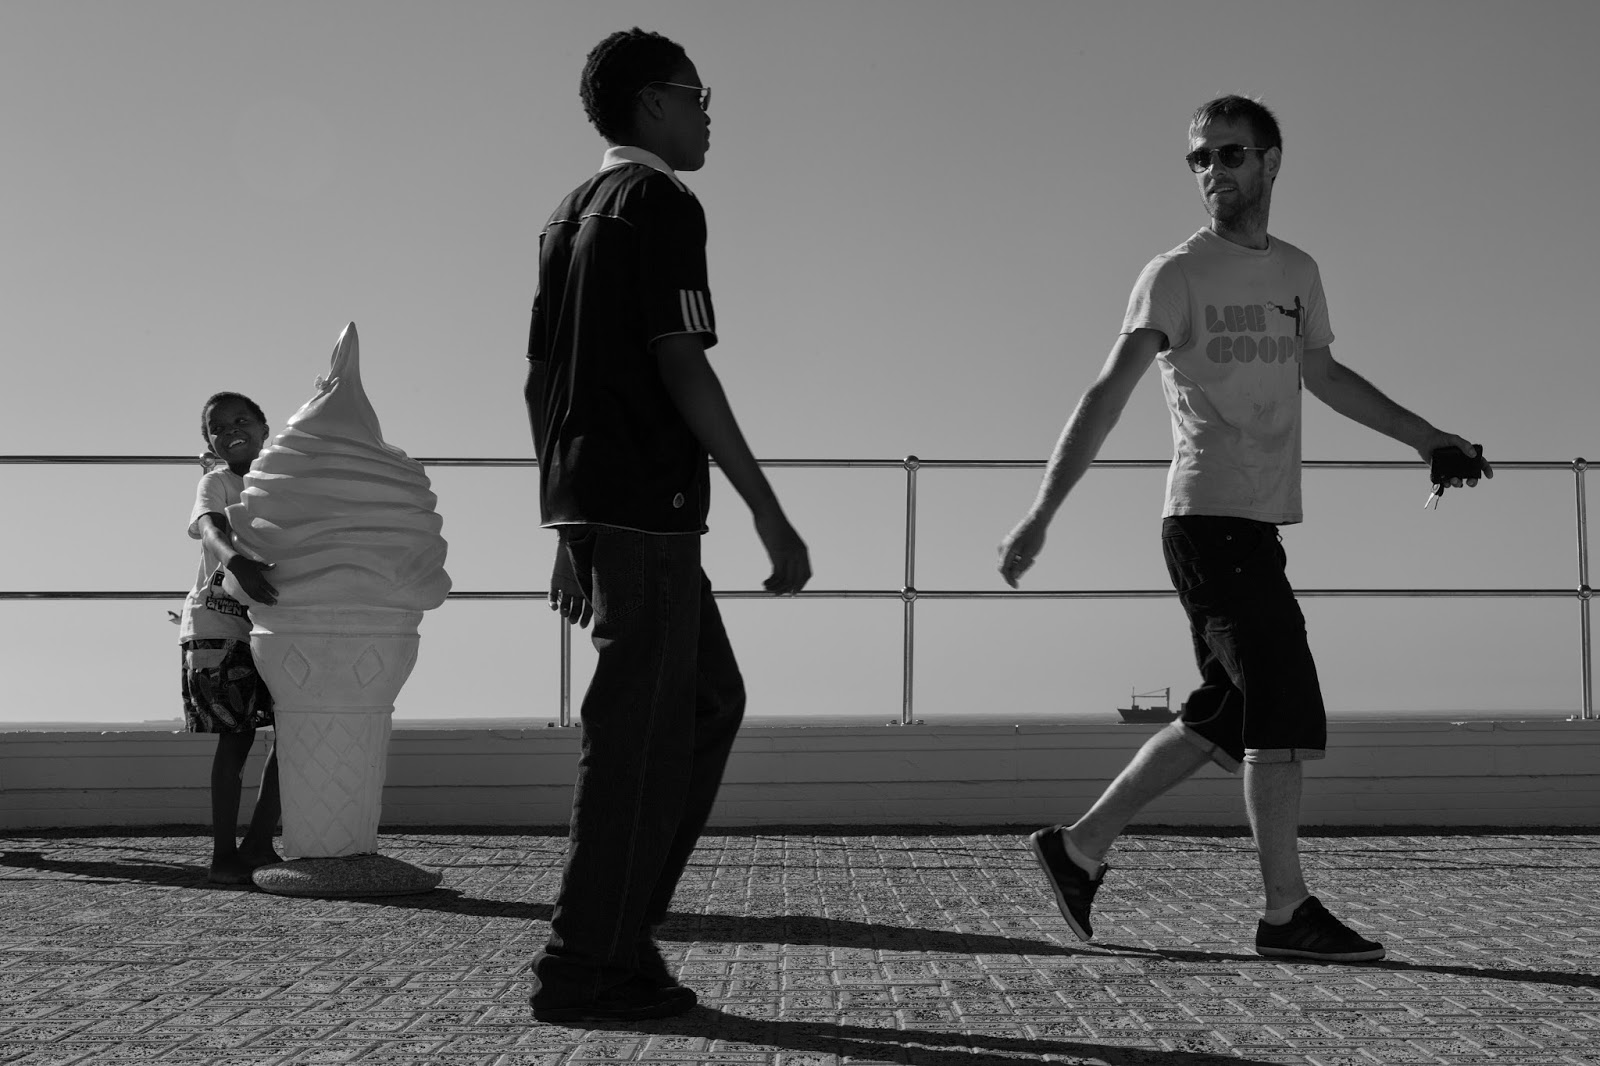 A boy hugs a giant ice cream while two young men have a passing interaction